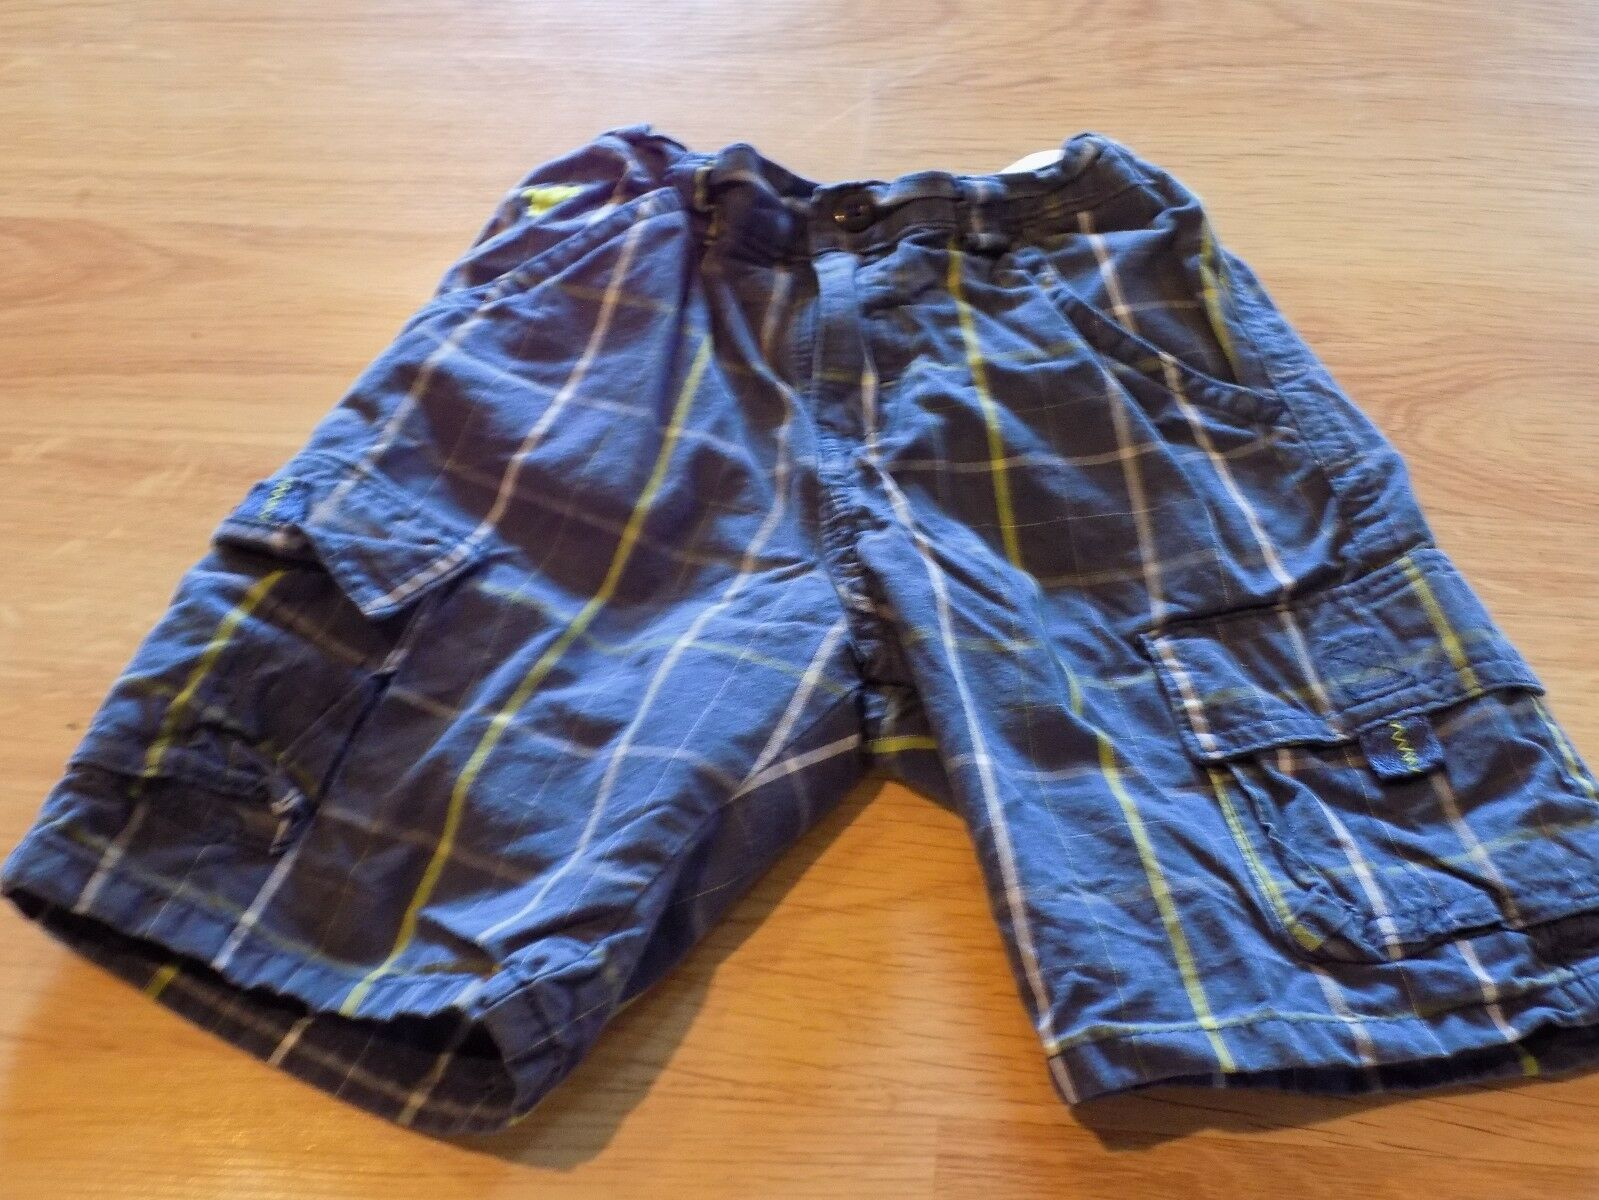 Primary image for Toddler Size 5T Blue Green Gray Plaid Cargo Summer Shorts Horse Logo EUC